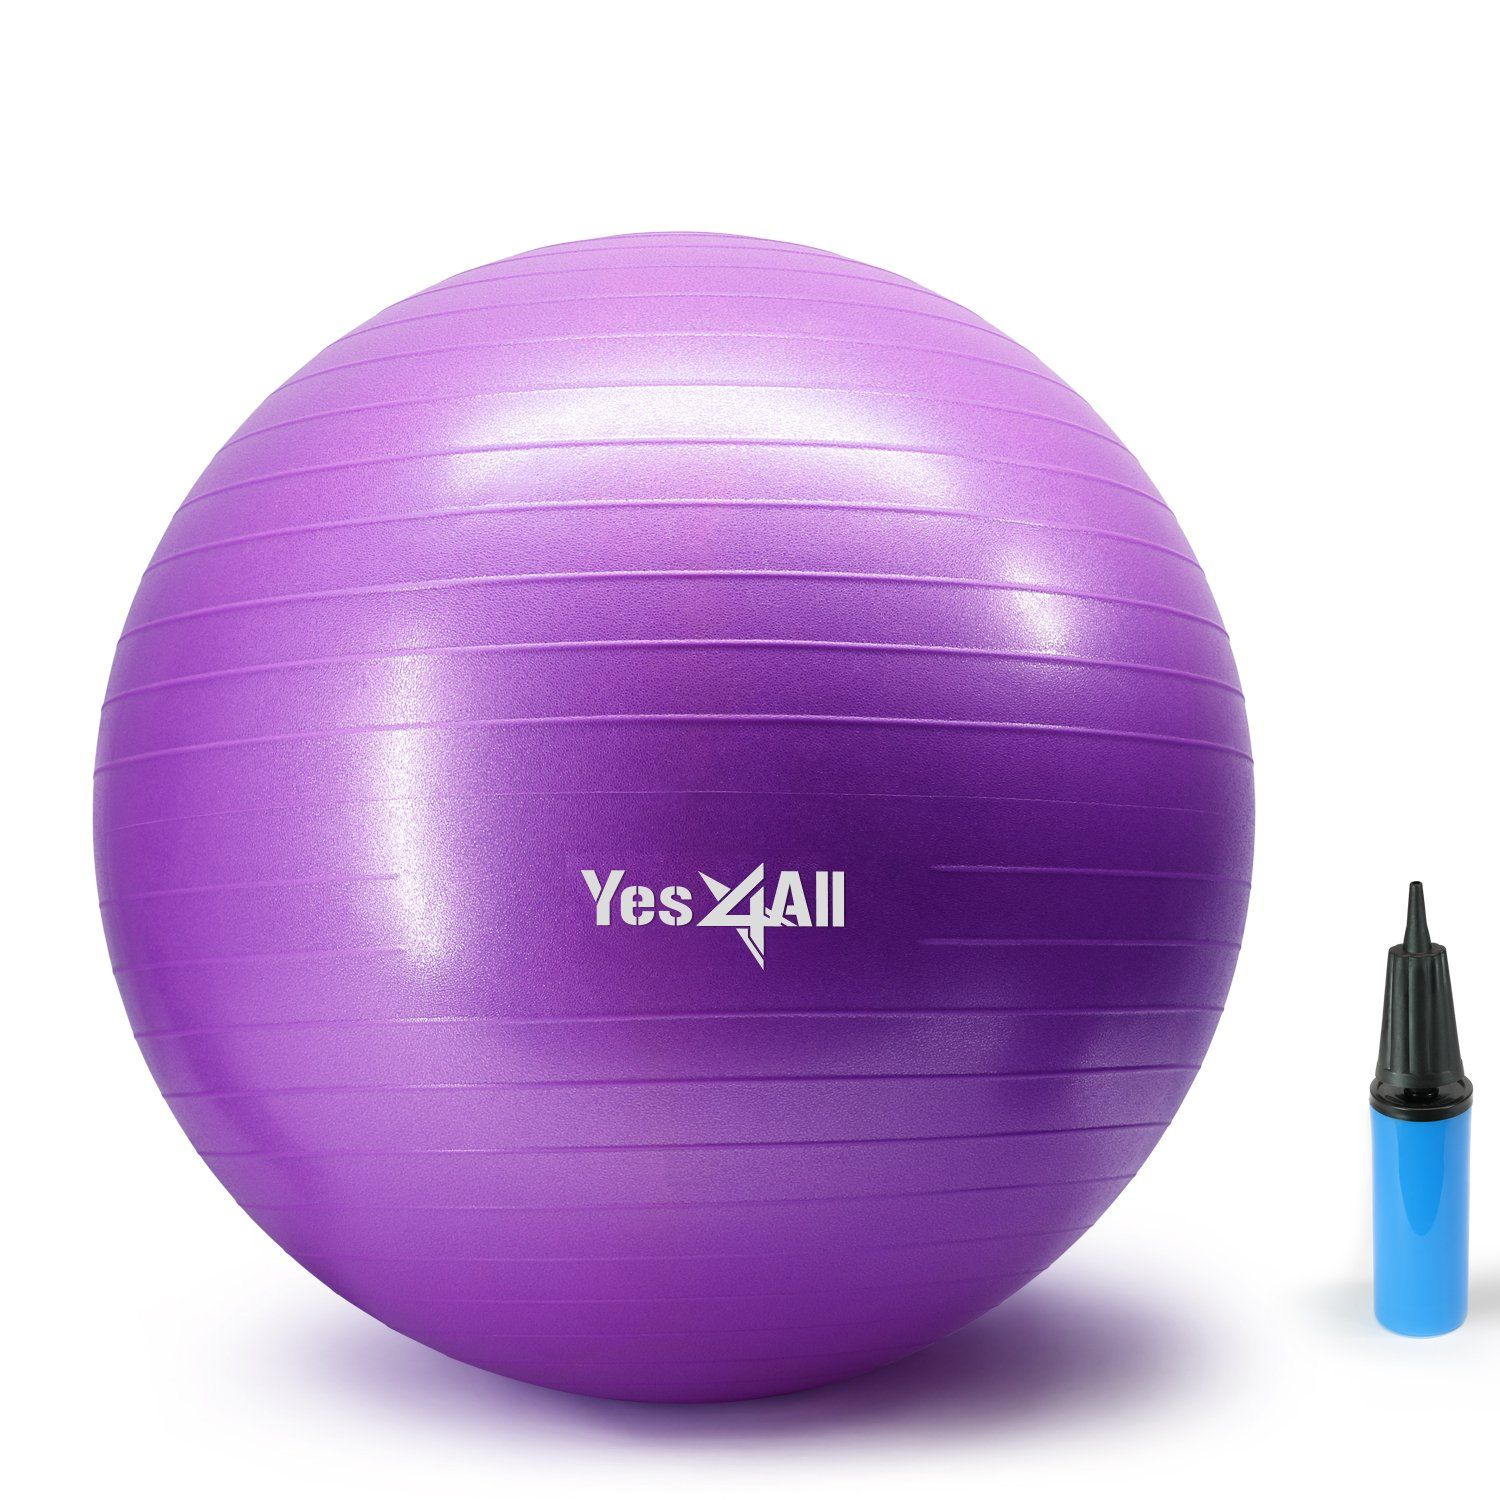 0c858671017072ebebbf3211034be8a3 - How Do I Know What Size Stability Ball To Get